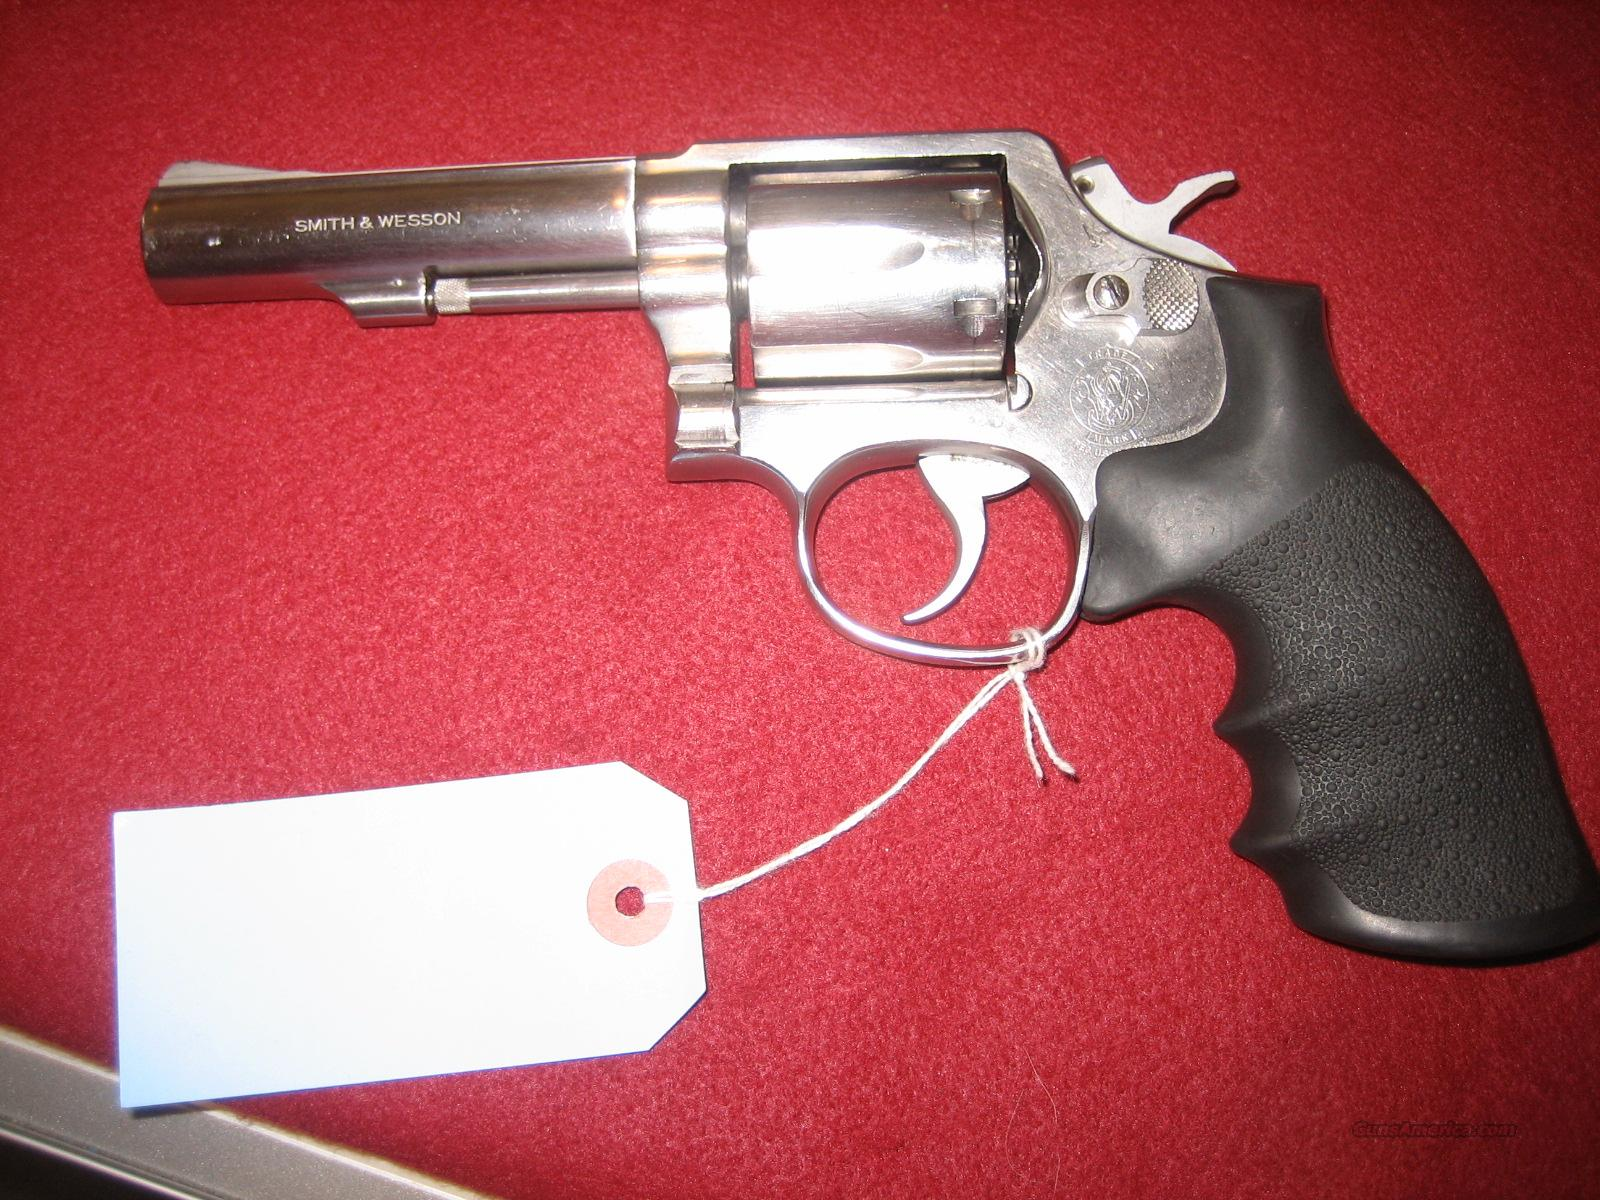 SMITH & WESSON 65-3 357mag  Guns > Pistols > Smith & Wesson Revolvers > Full Frame Revolver